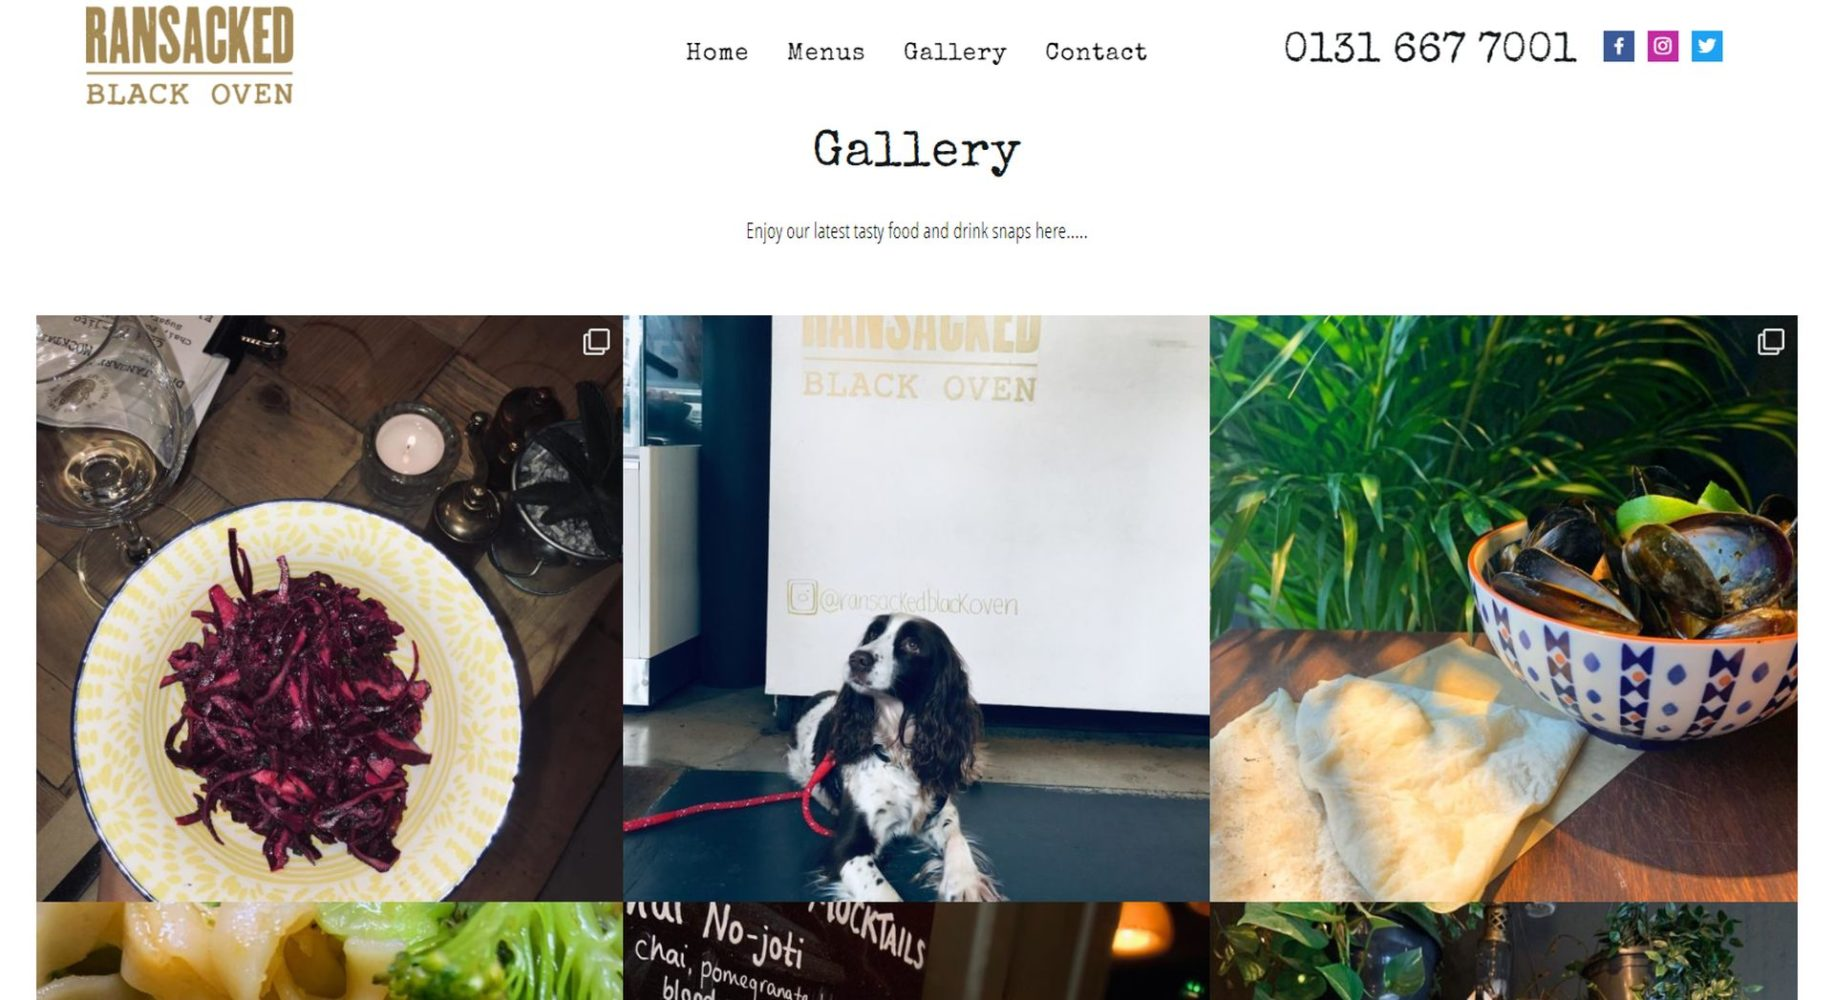 Ransacked Black Oven Website Design Gallery